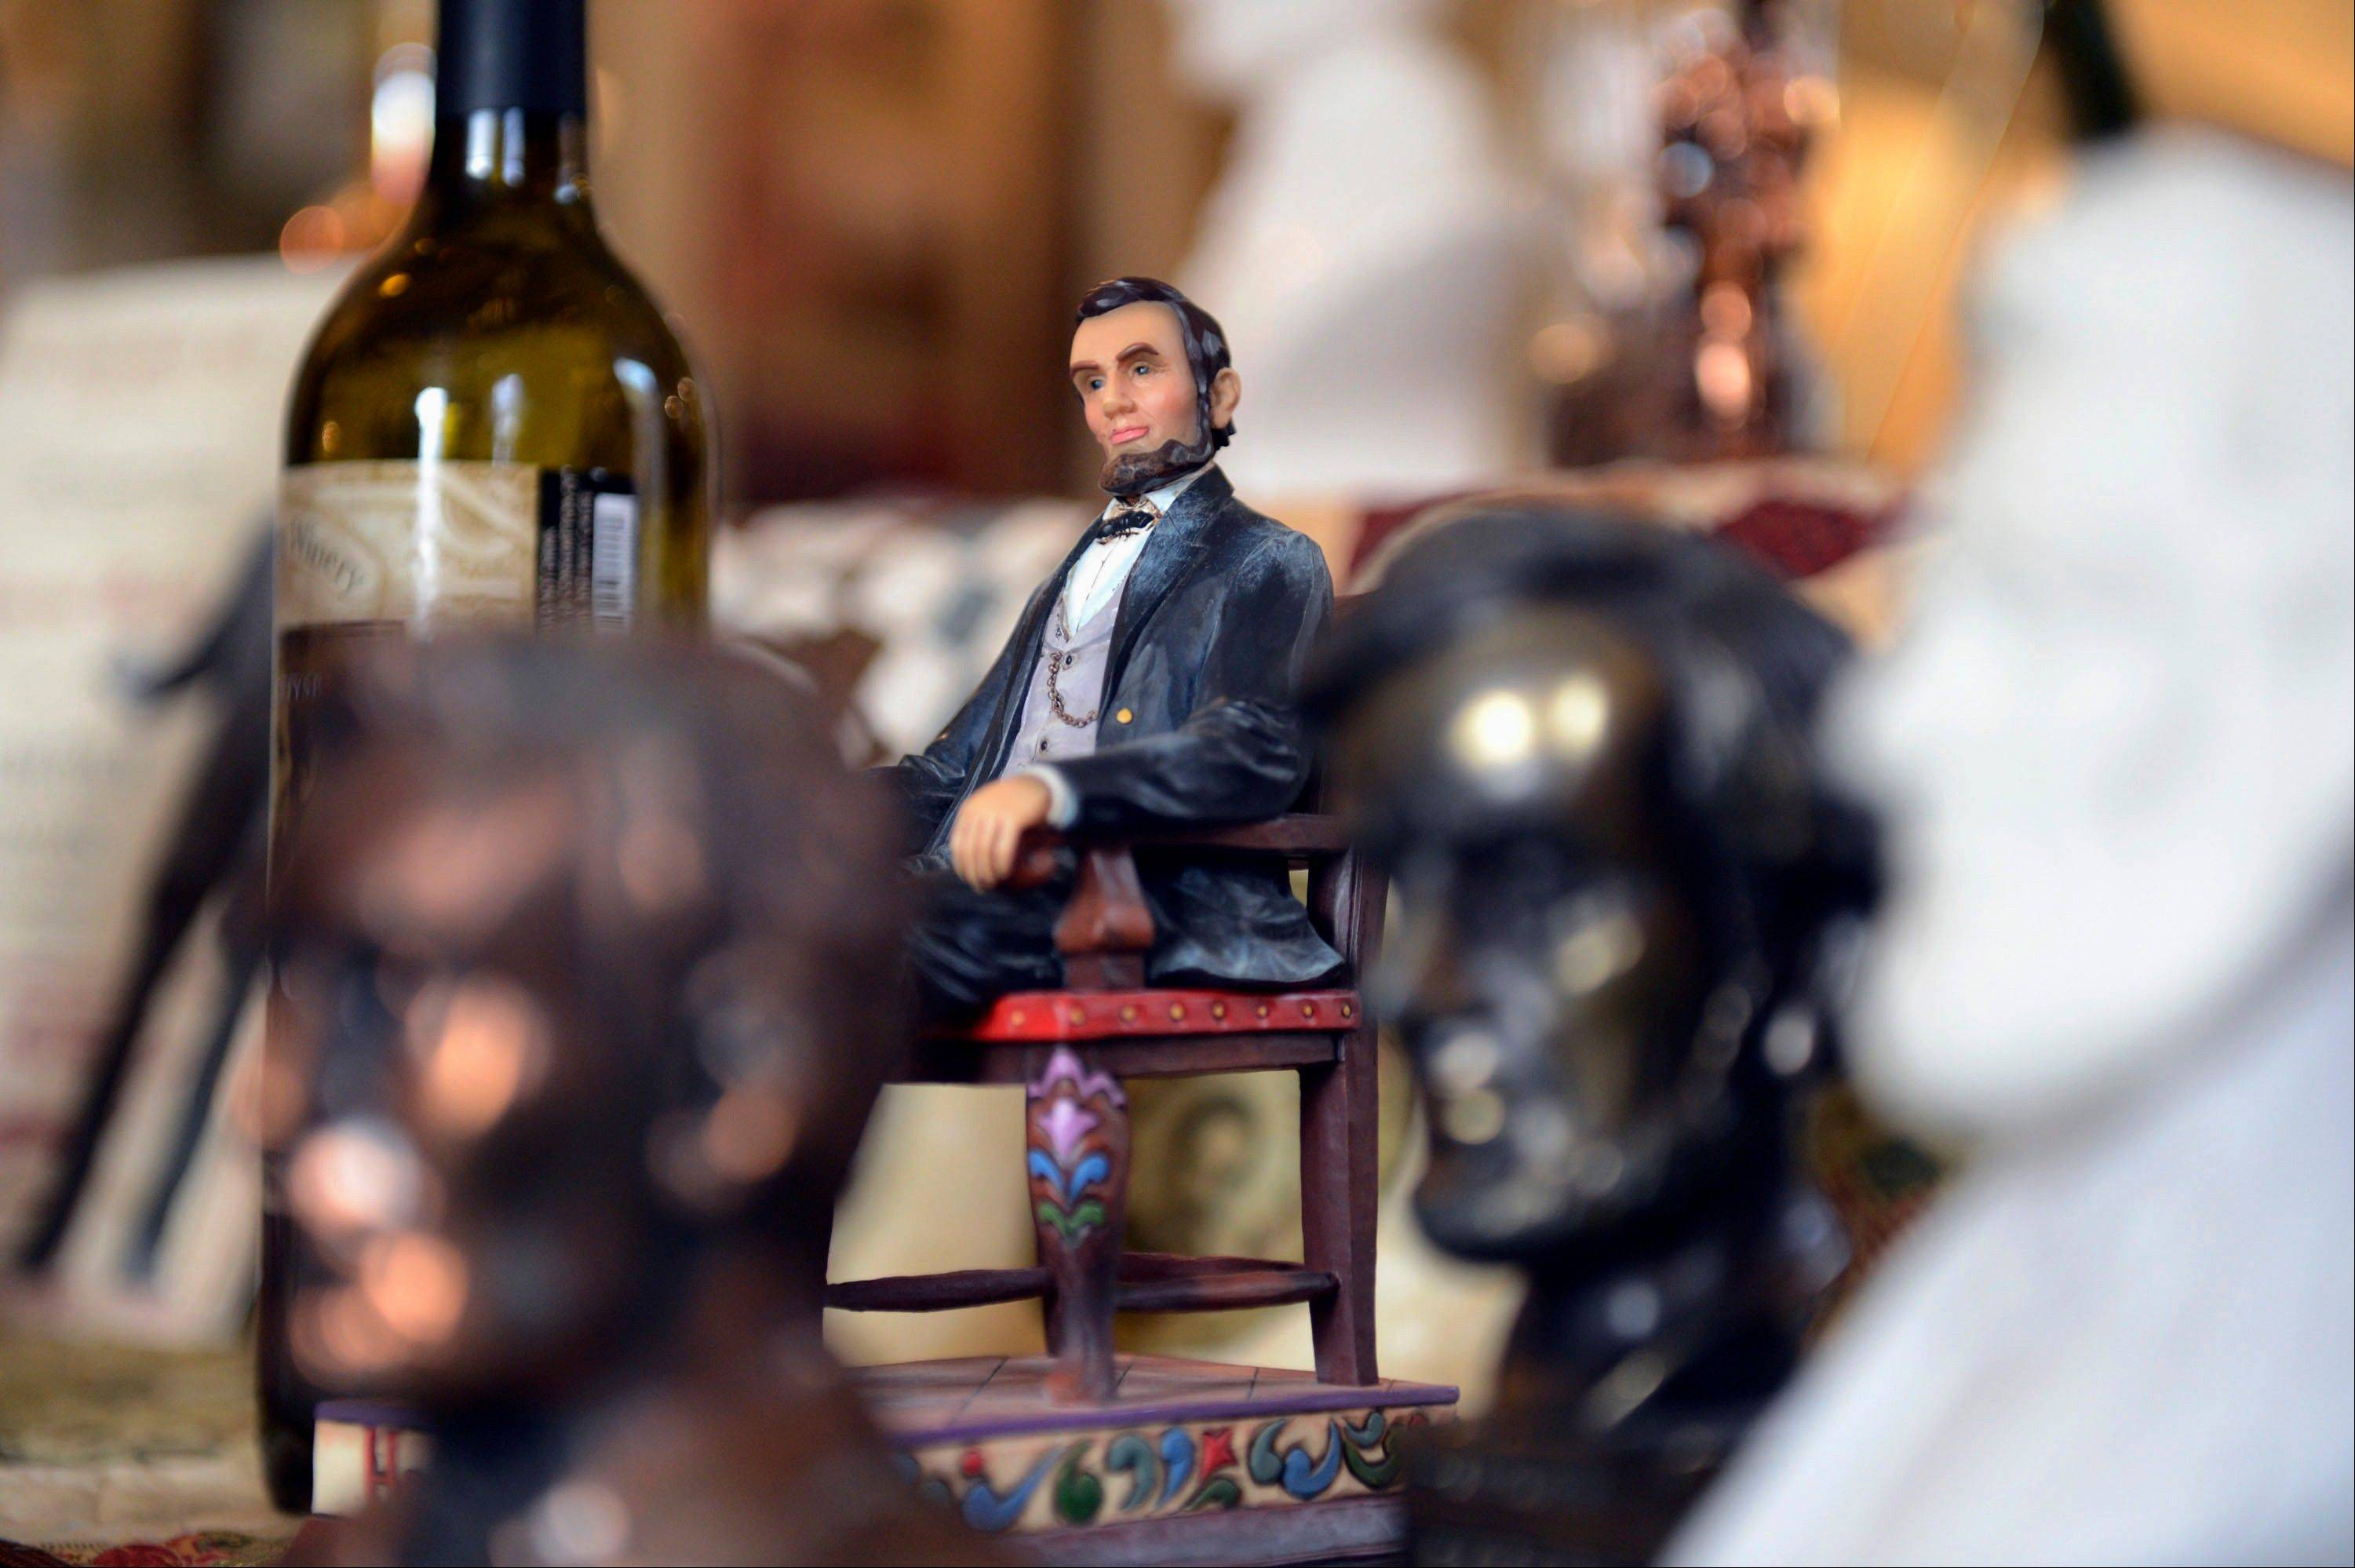 Exhibit focuses on Lincoln's image